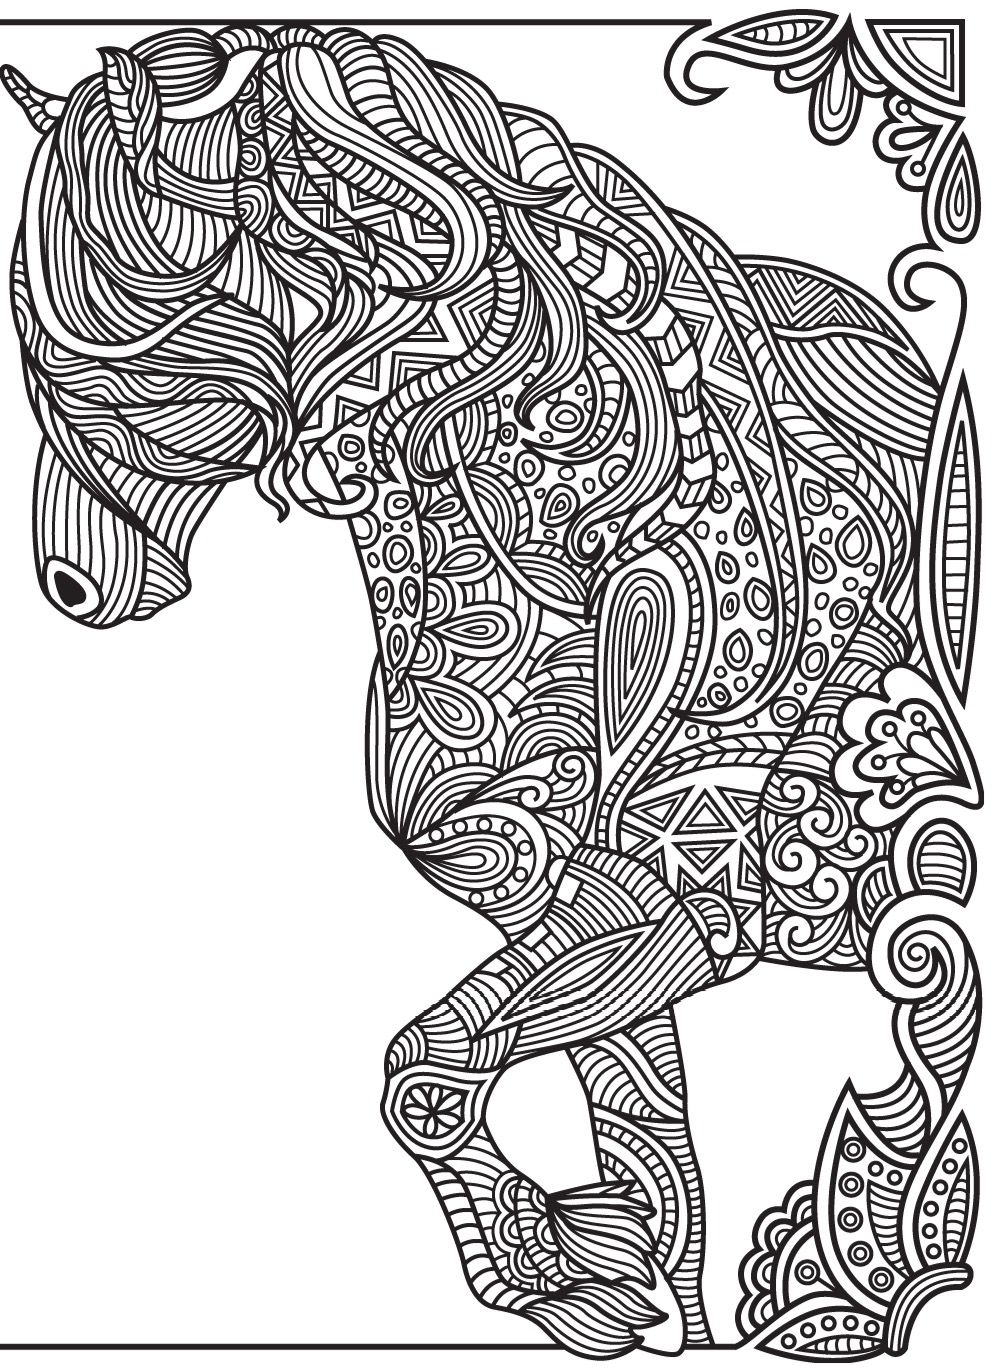 Horses Colorish Coloring Book App For Adults Mandala Relax By Goodsofttech Horse Coloring Books Horse Coloring Pages Animal Coloring Books